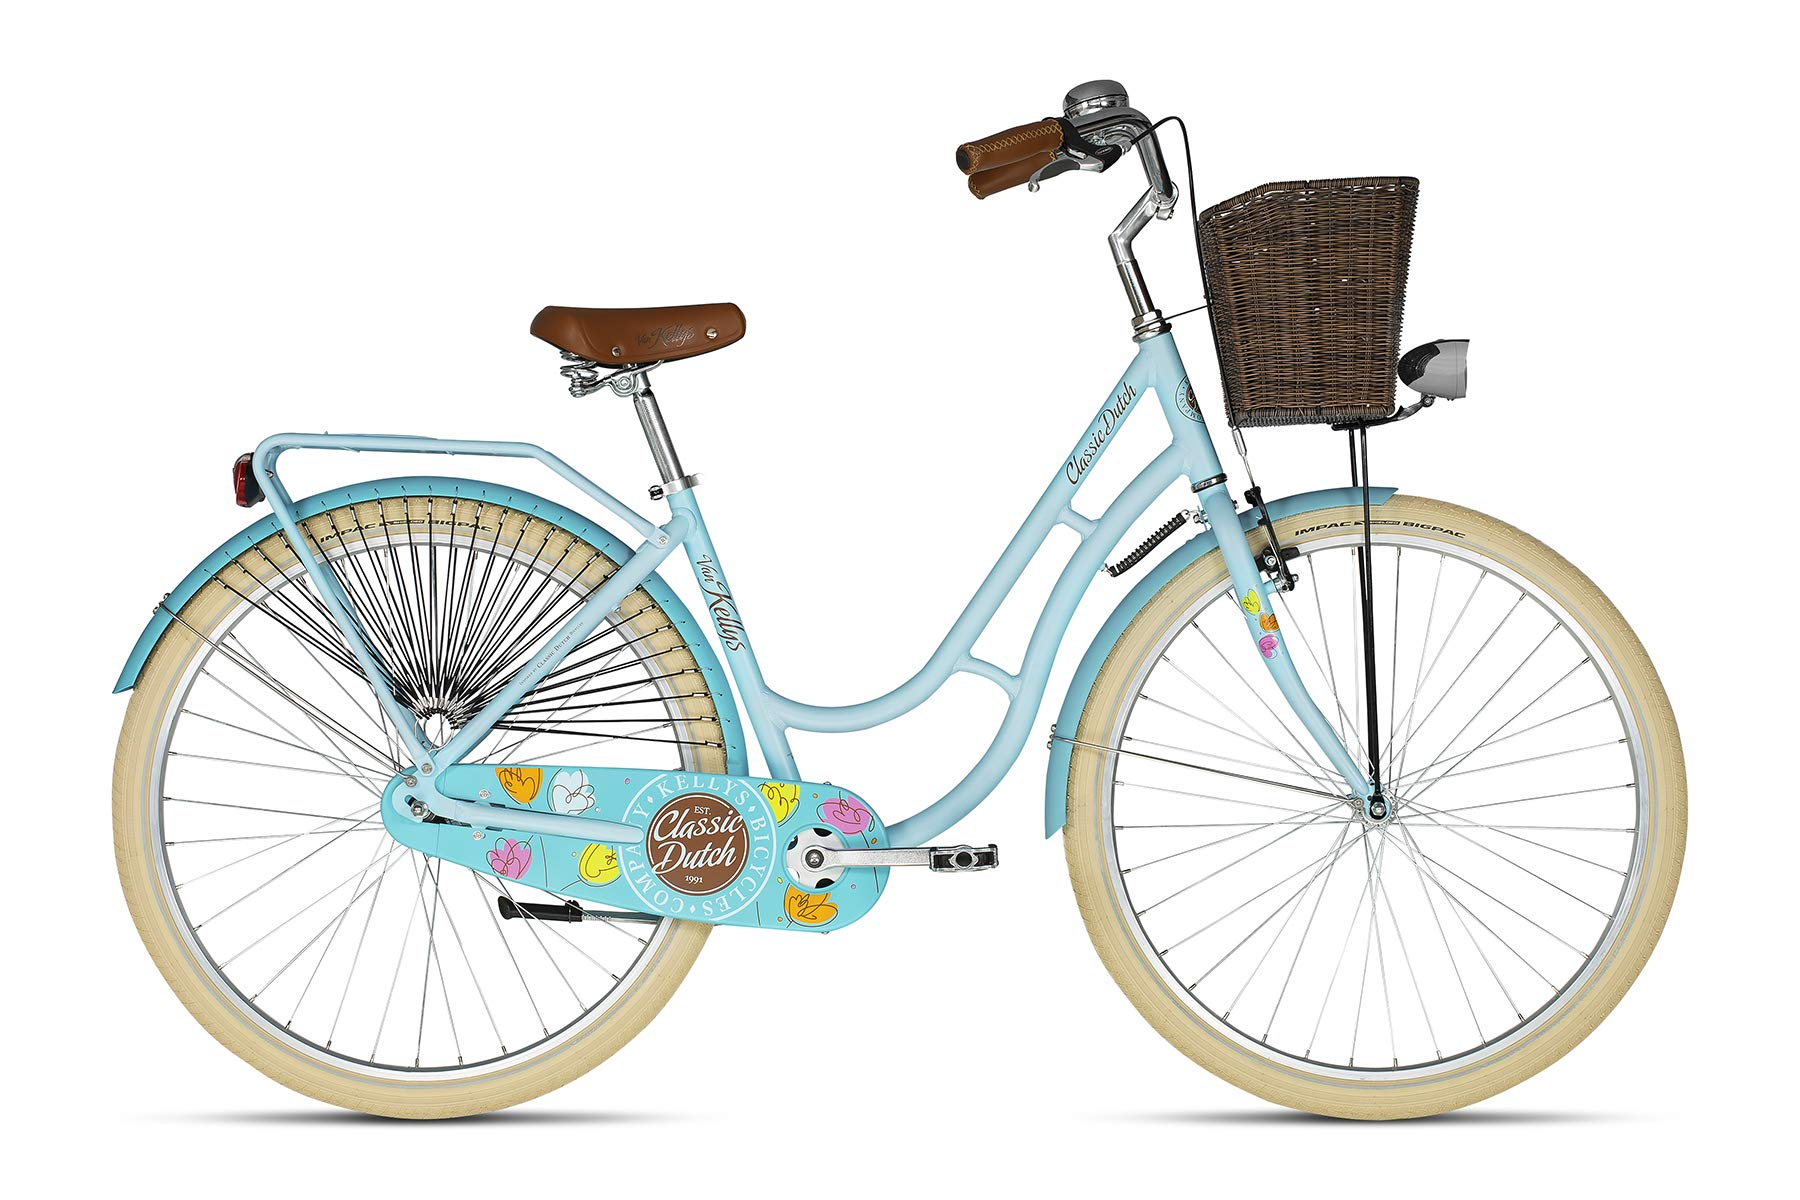 Kellys Classic Dutch City Bike 2020 - Bicicleta Holandesa, Color ...